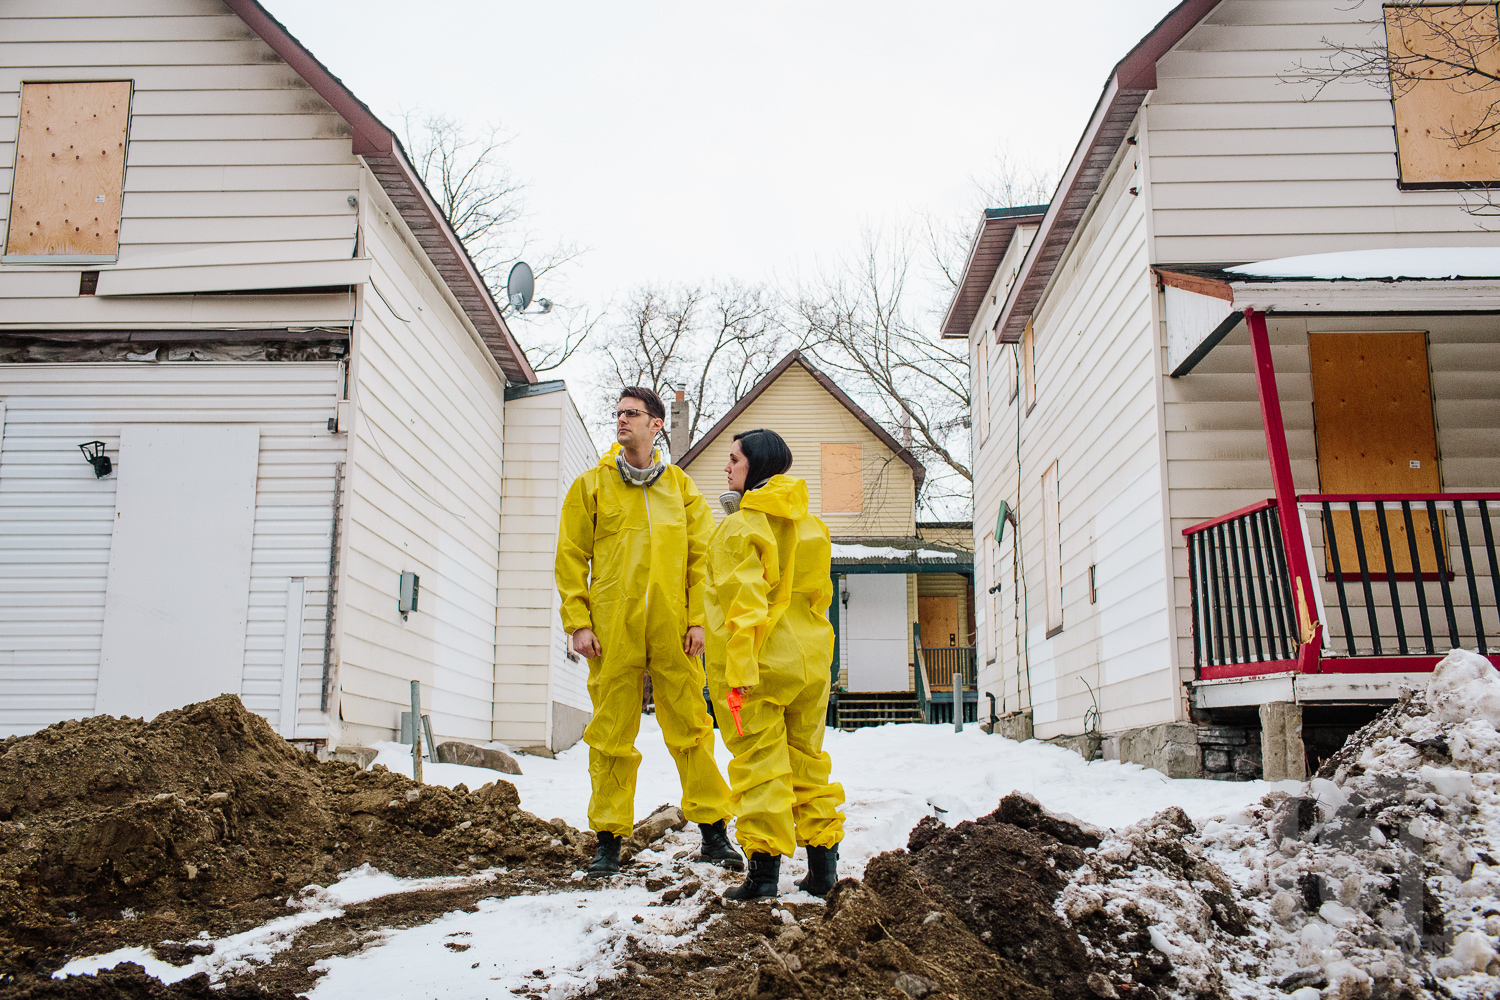 Engagement shoot of the couple doing a dramatic pose dressed in their hazmat suits